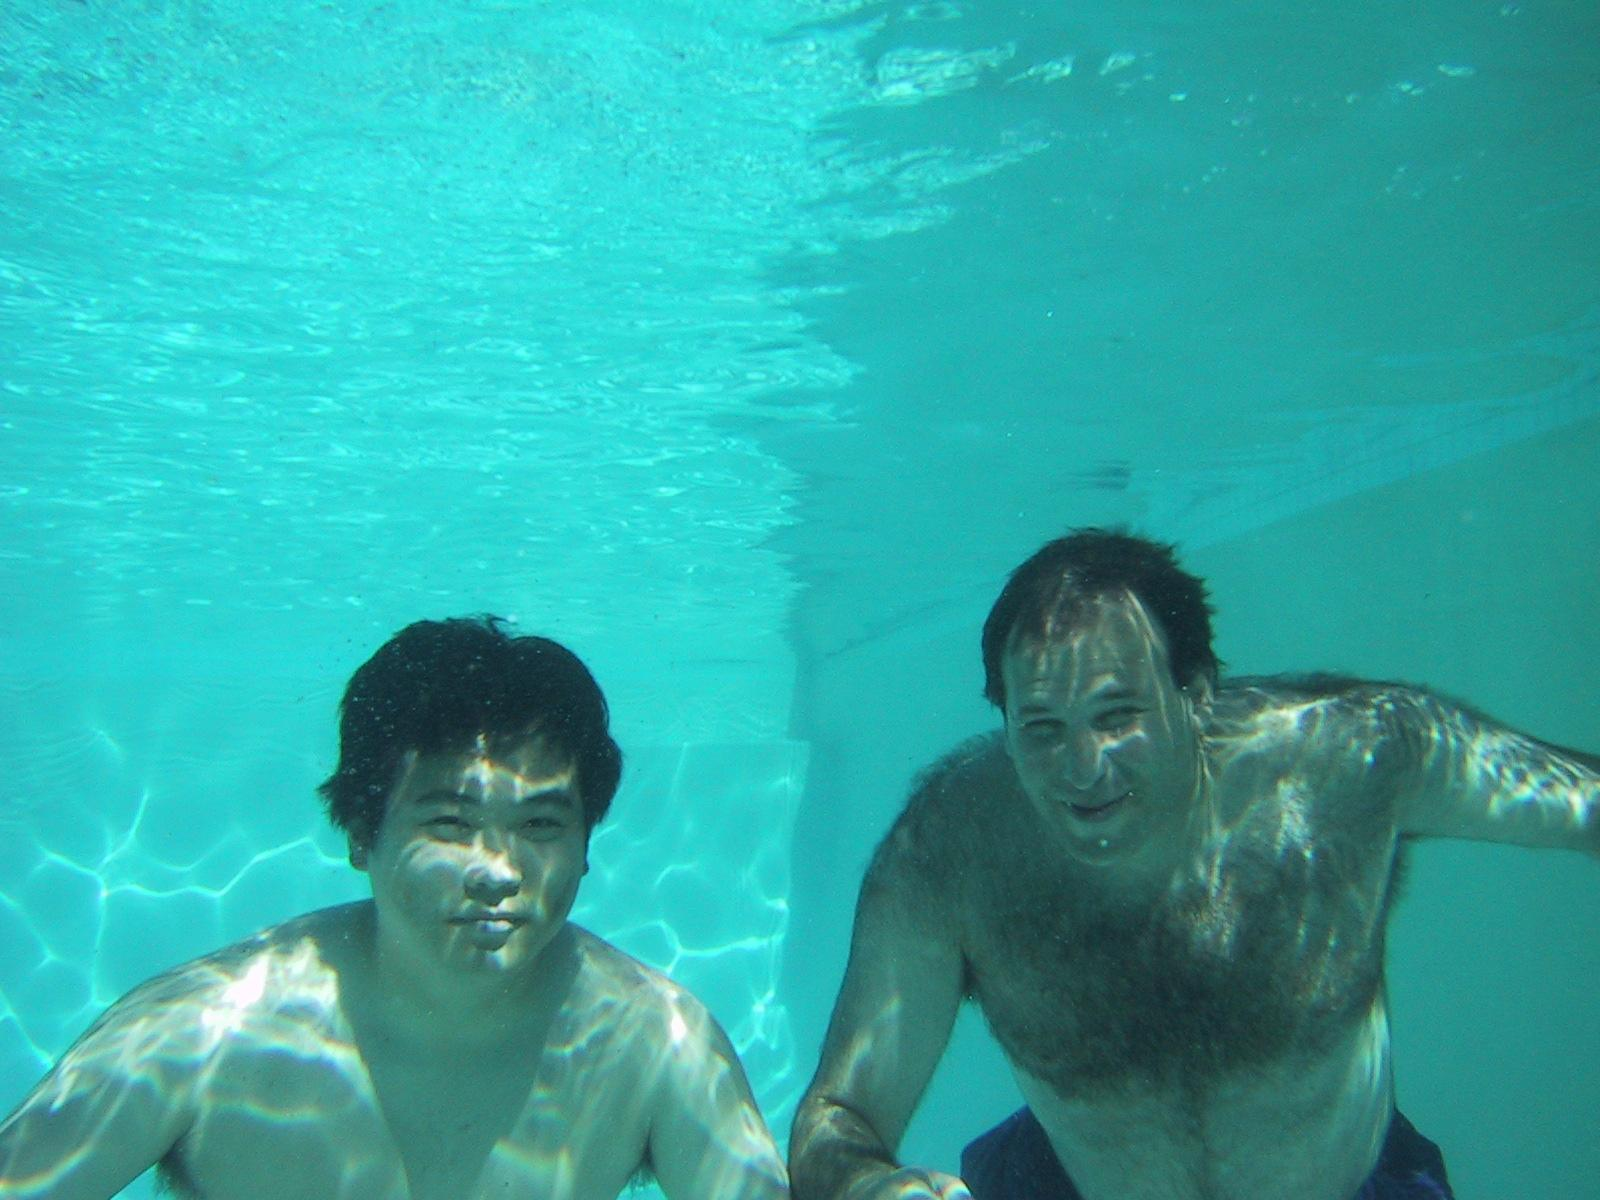 jin and philip in pool author greenspun